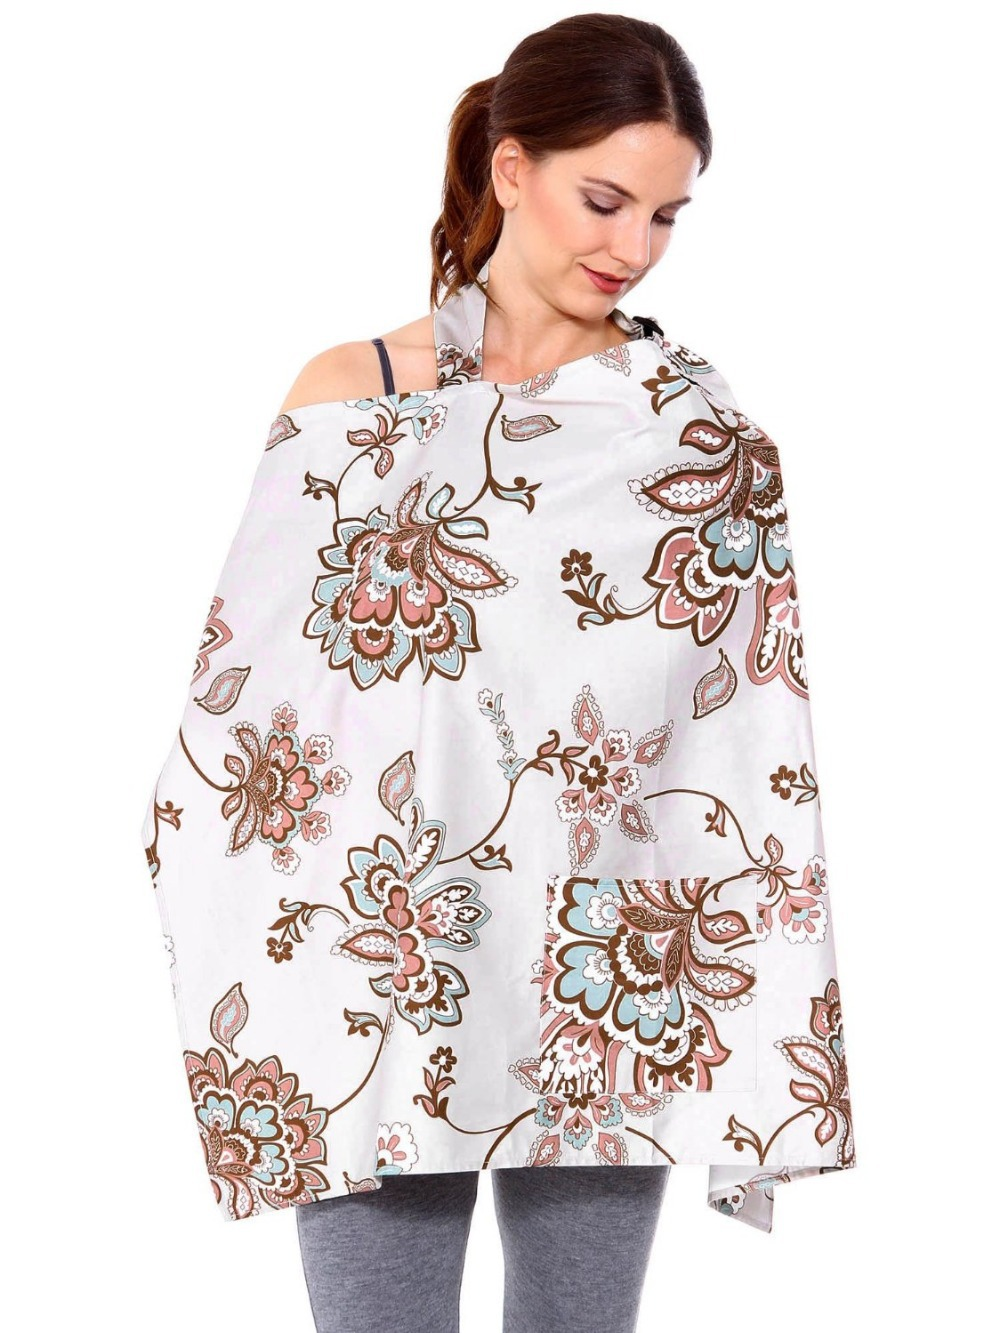 Fast, FREE shipping* on most nursing covers when you spend $49 or more, or FREE in-store pick up in 1 hour at one of our 80+ Babies R Us Canada stores.